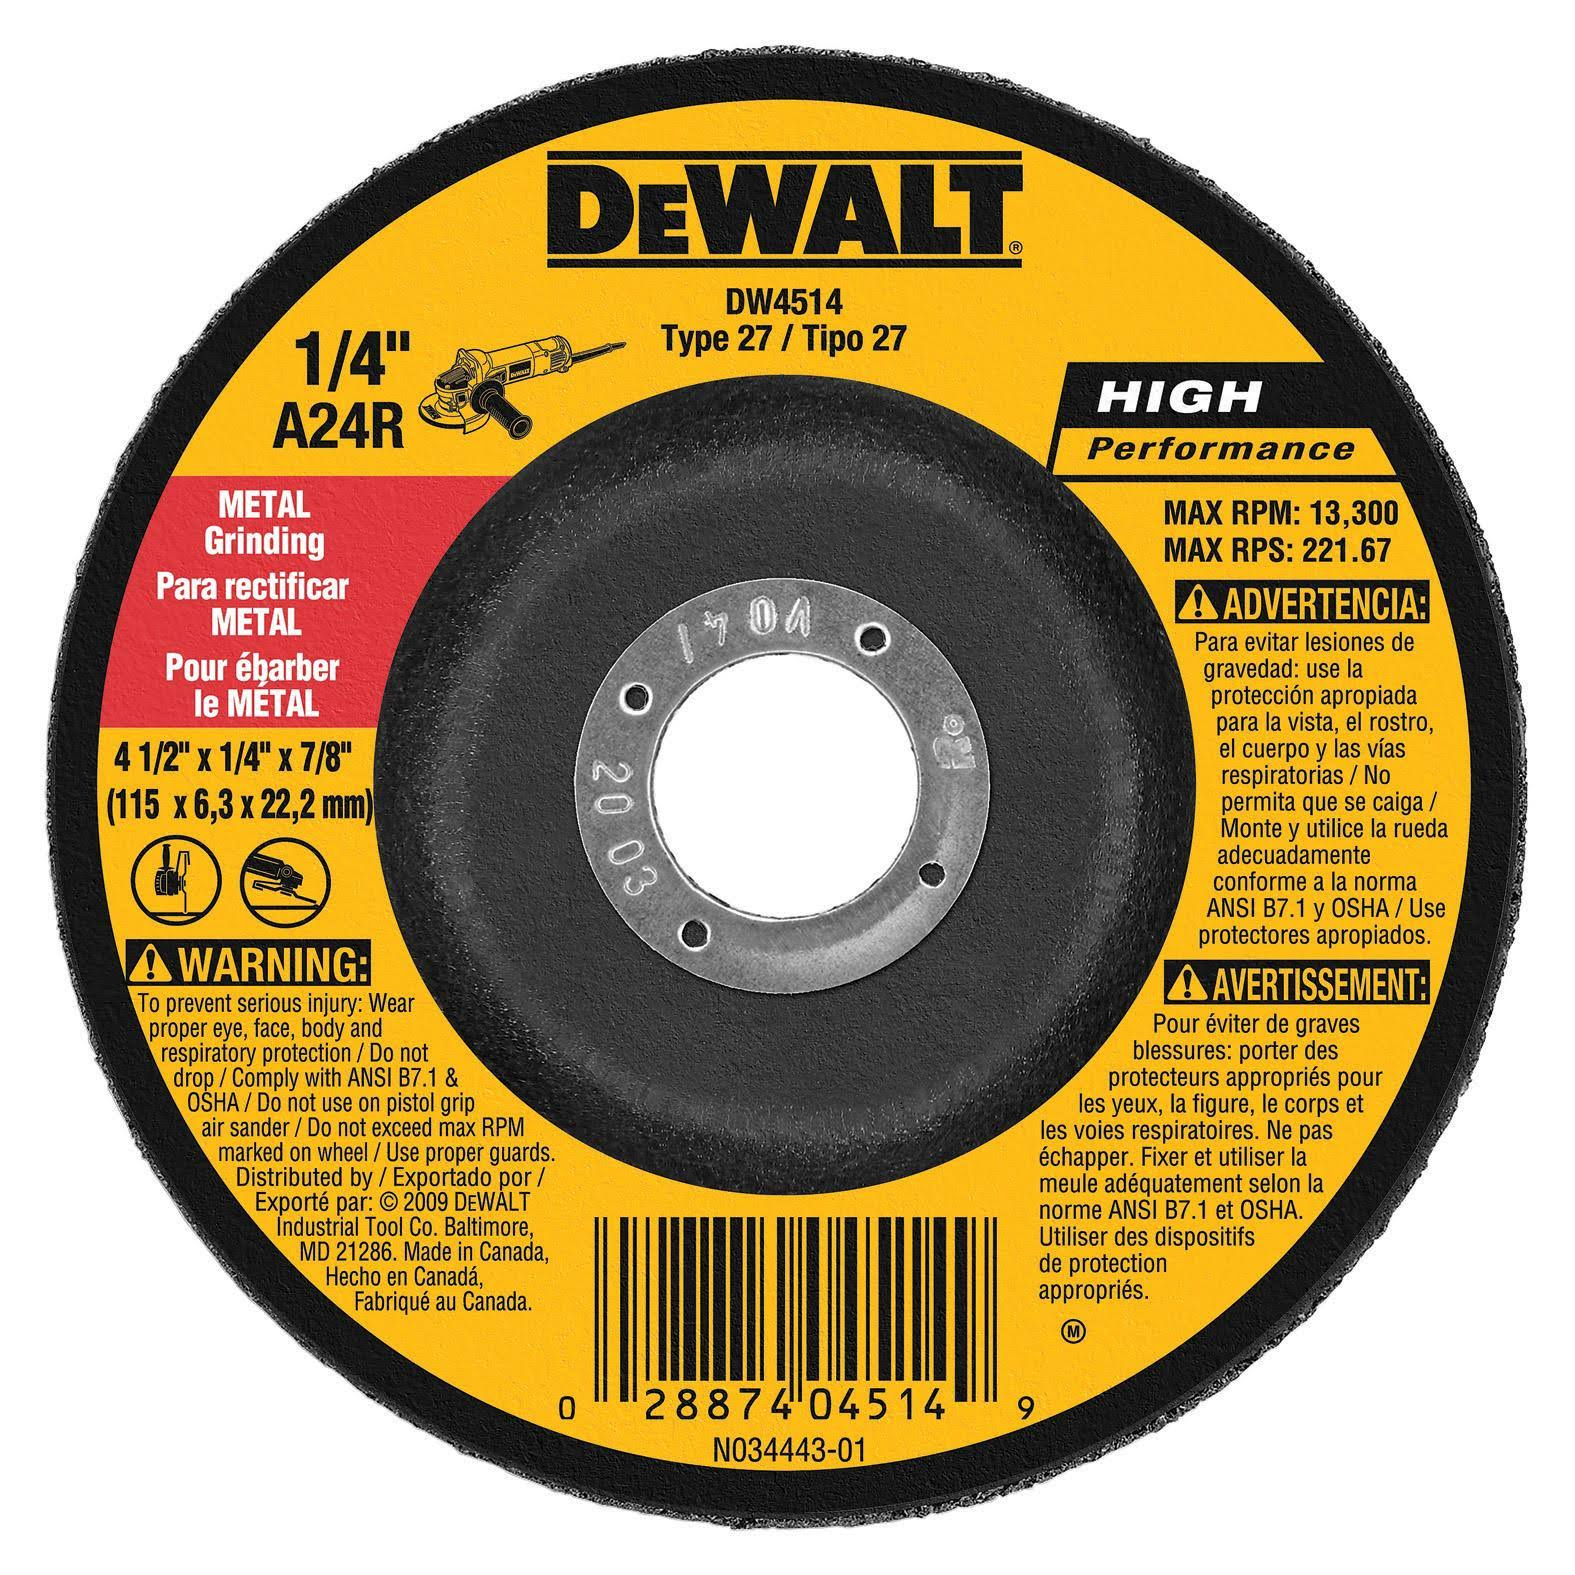 DeWalt DW4514 Hi-Performance Metal-Grinding Wheel - 4 1/2 x 1/4 x 7/8 in